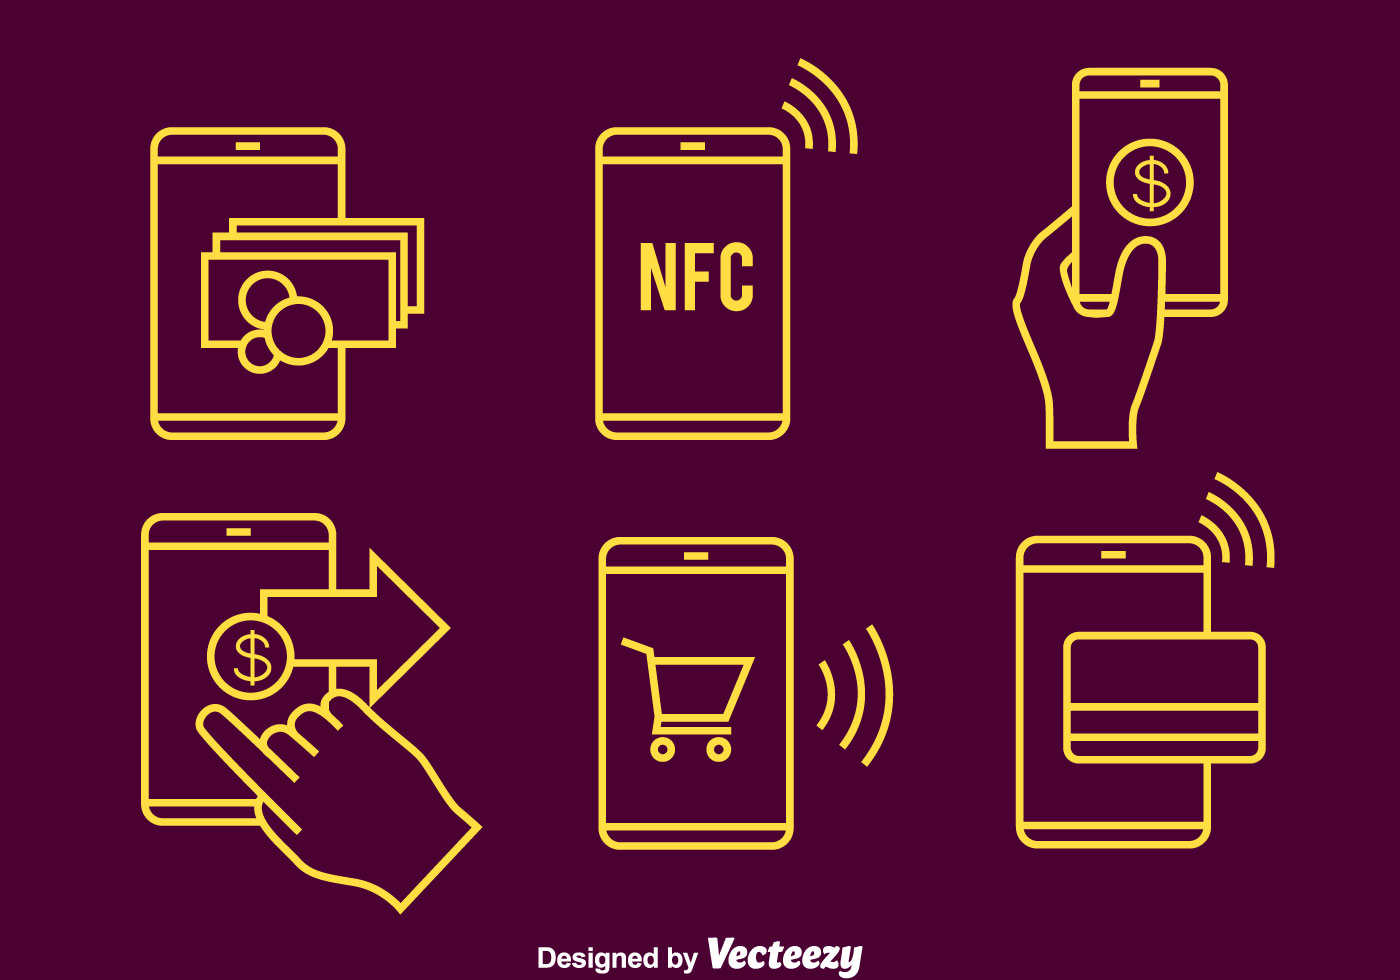 Nfc Payment Line Icons Vector - Download Free Vector Art ...  Nfc Payment Lin...